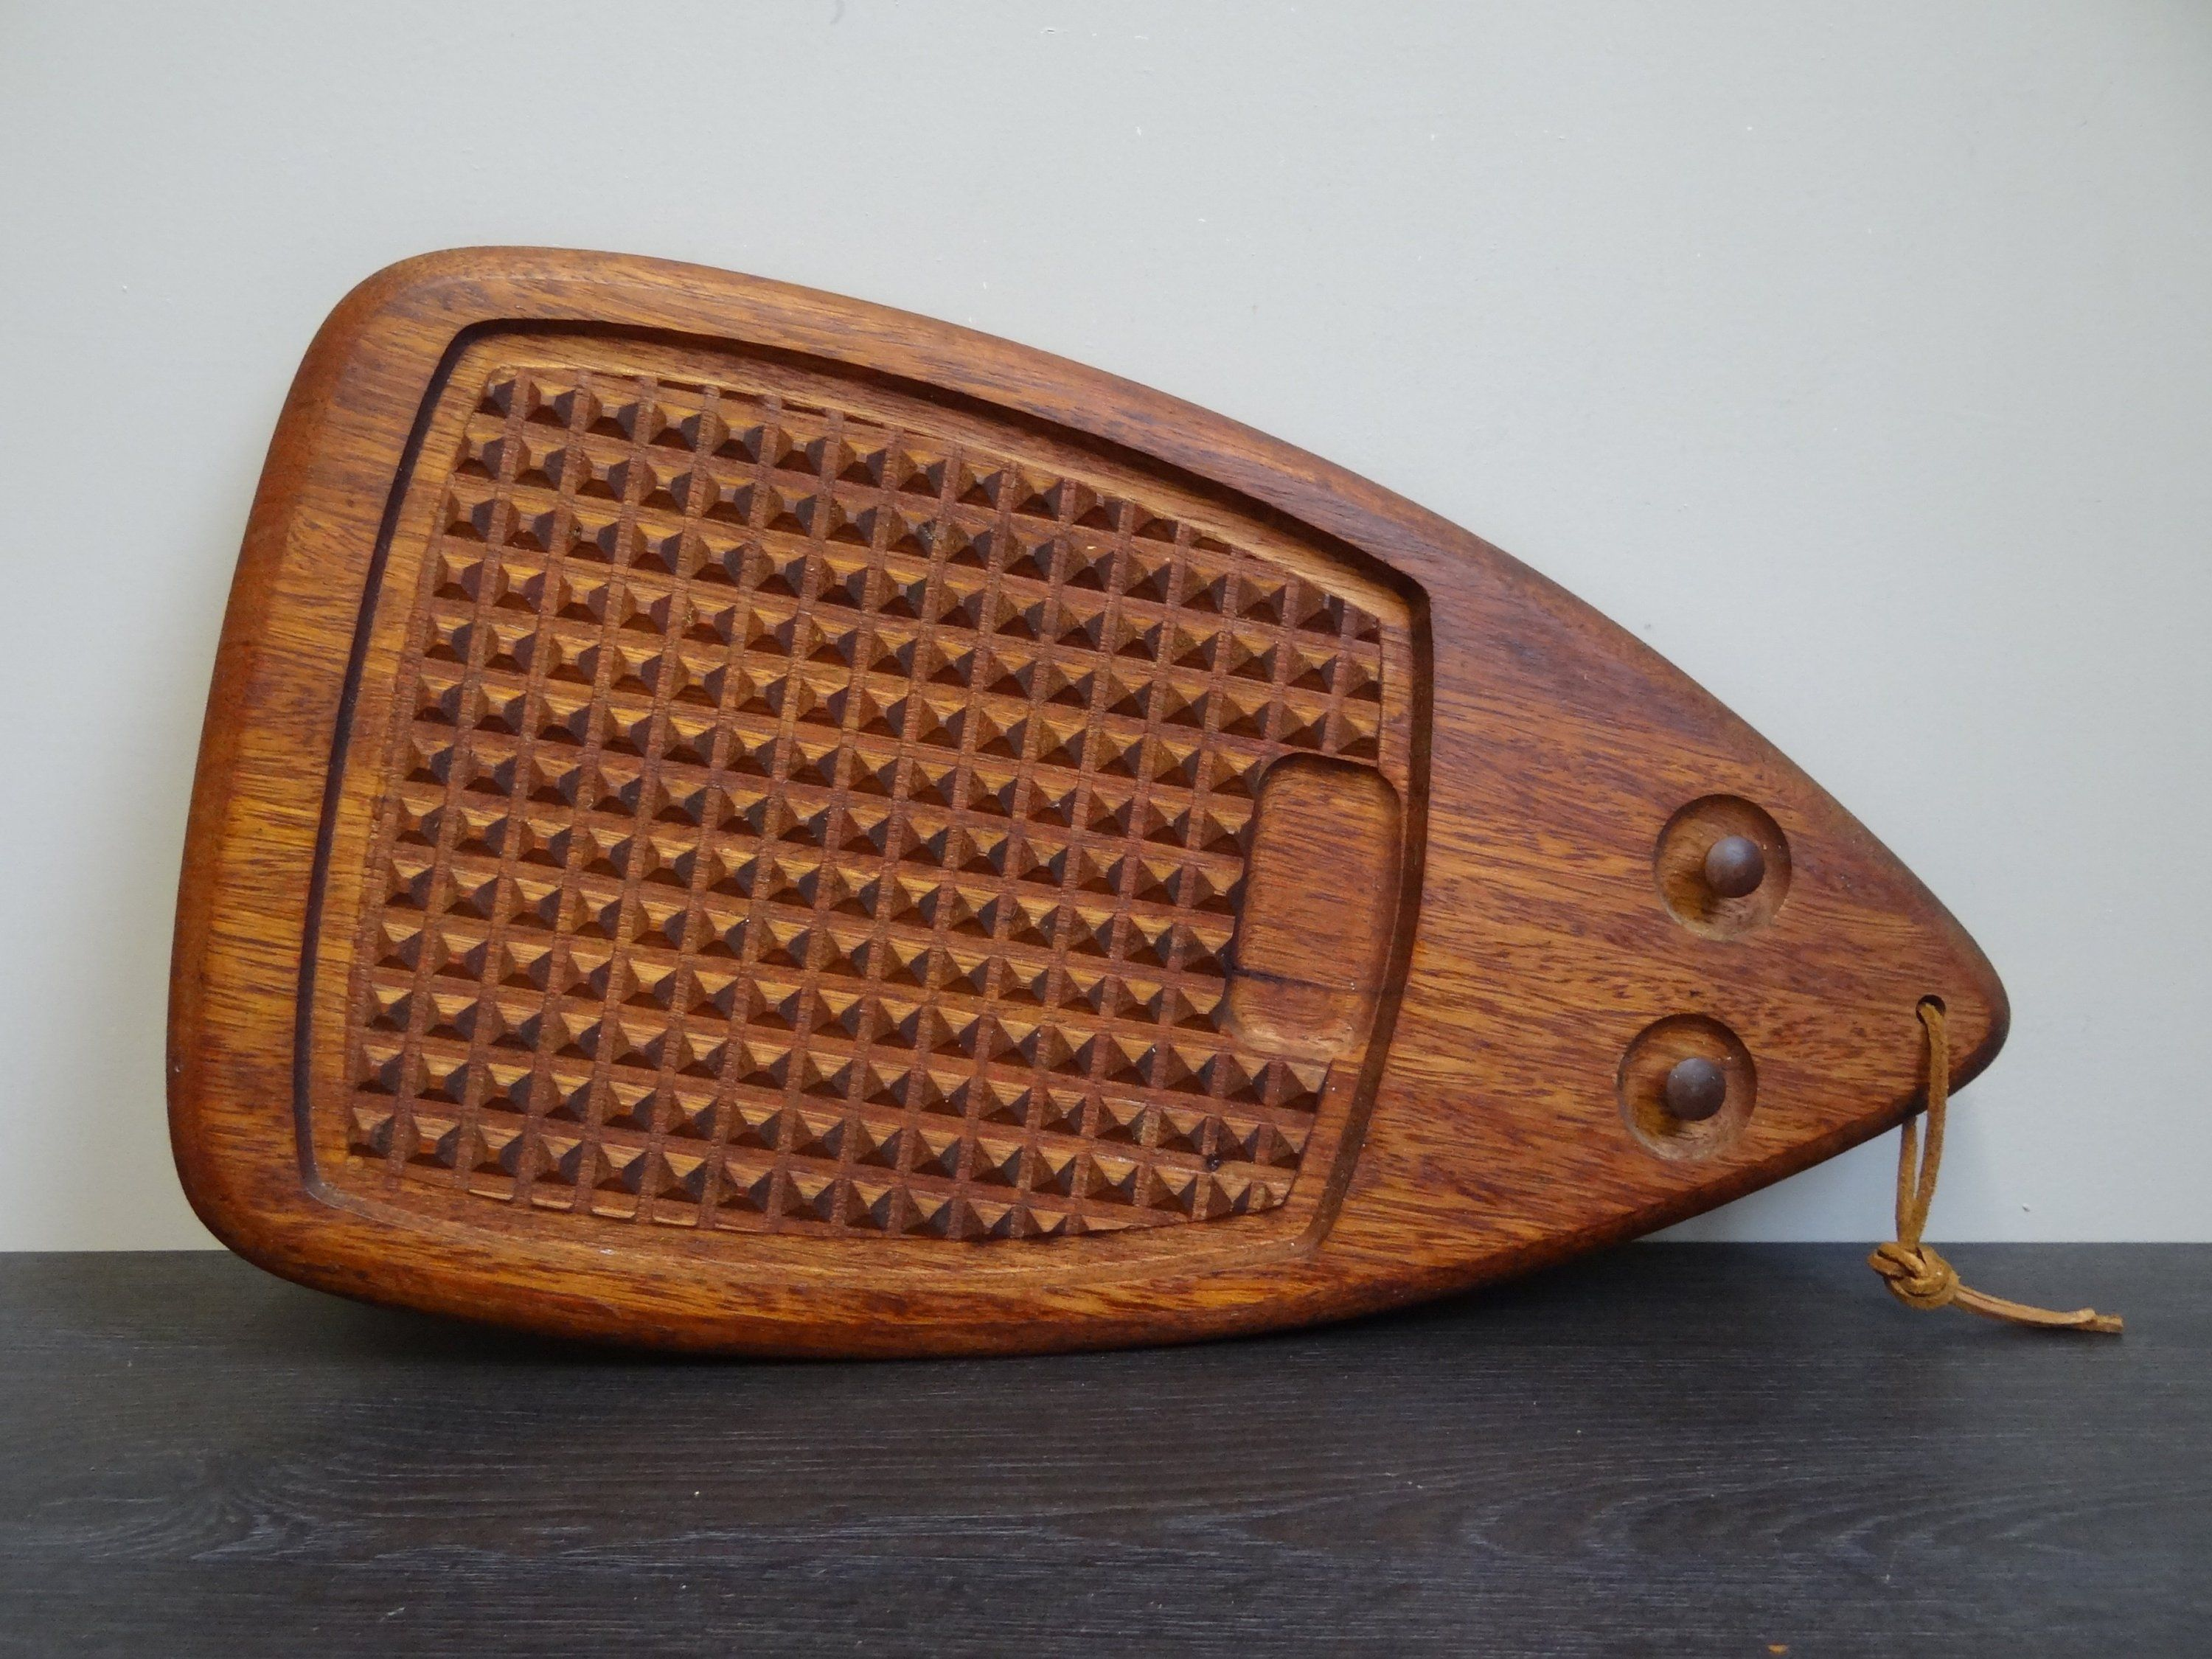 Teakholz Tablett Vintage Teak Servier Tray Danish Design Hedgehog Teak